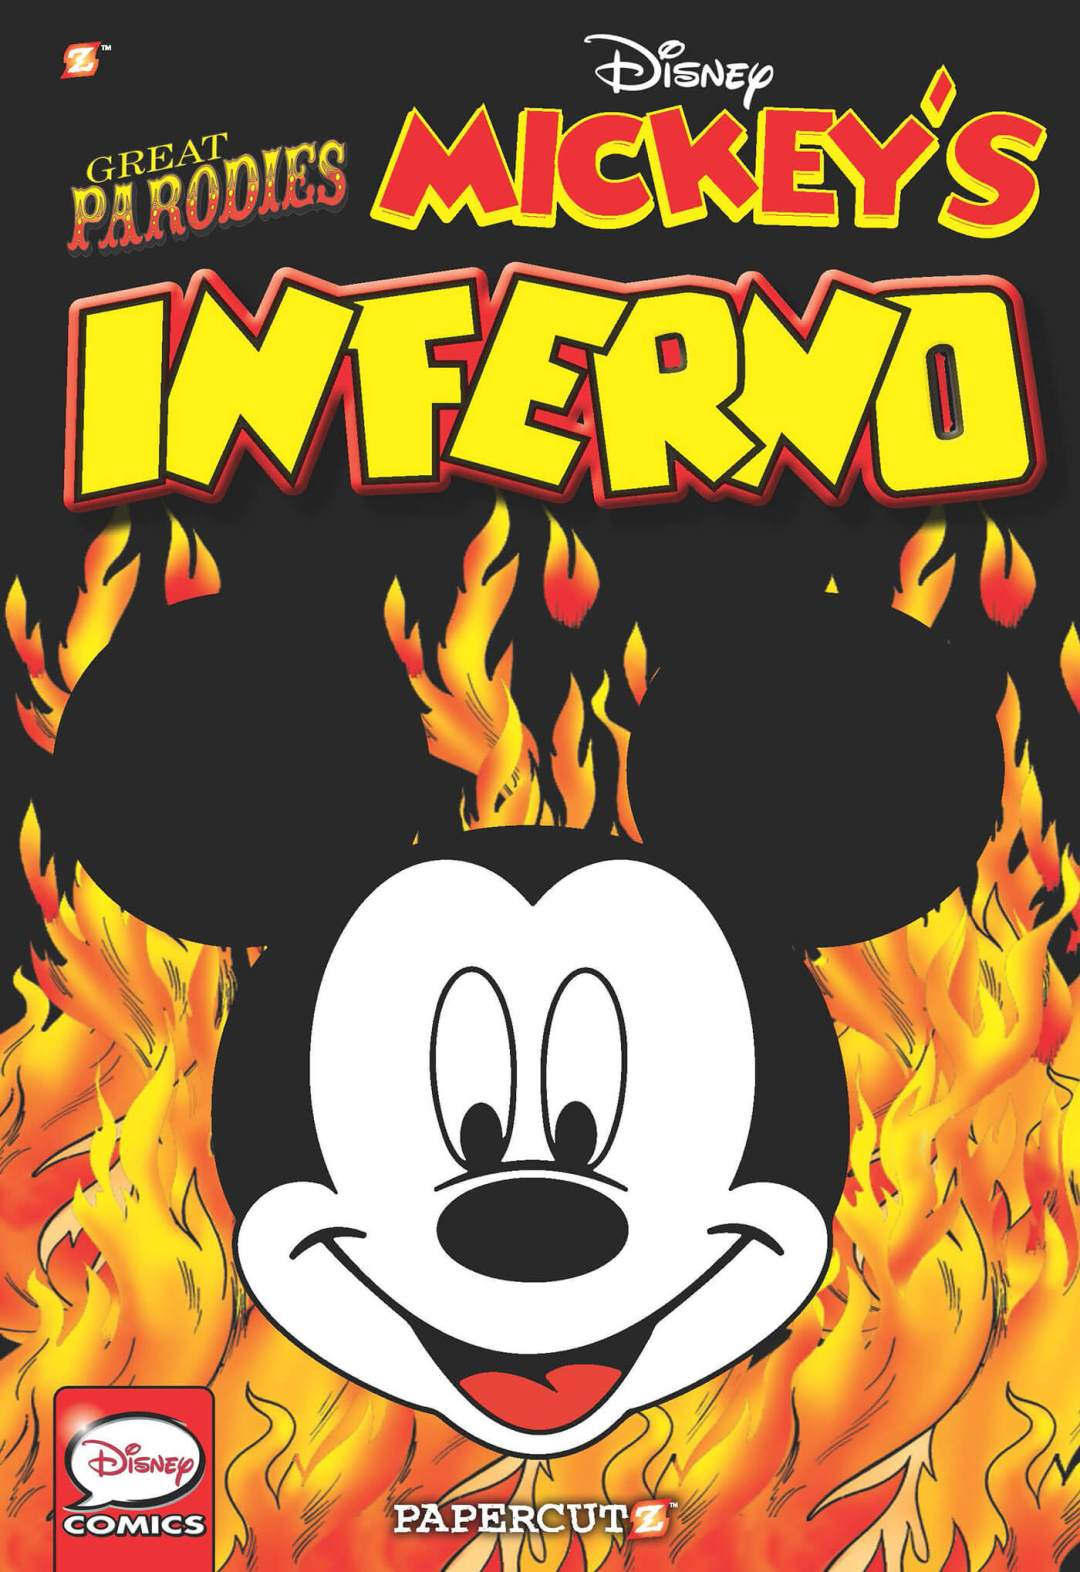 MICKEYS_ INFERNO_cover_graphic